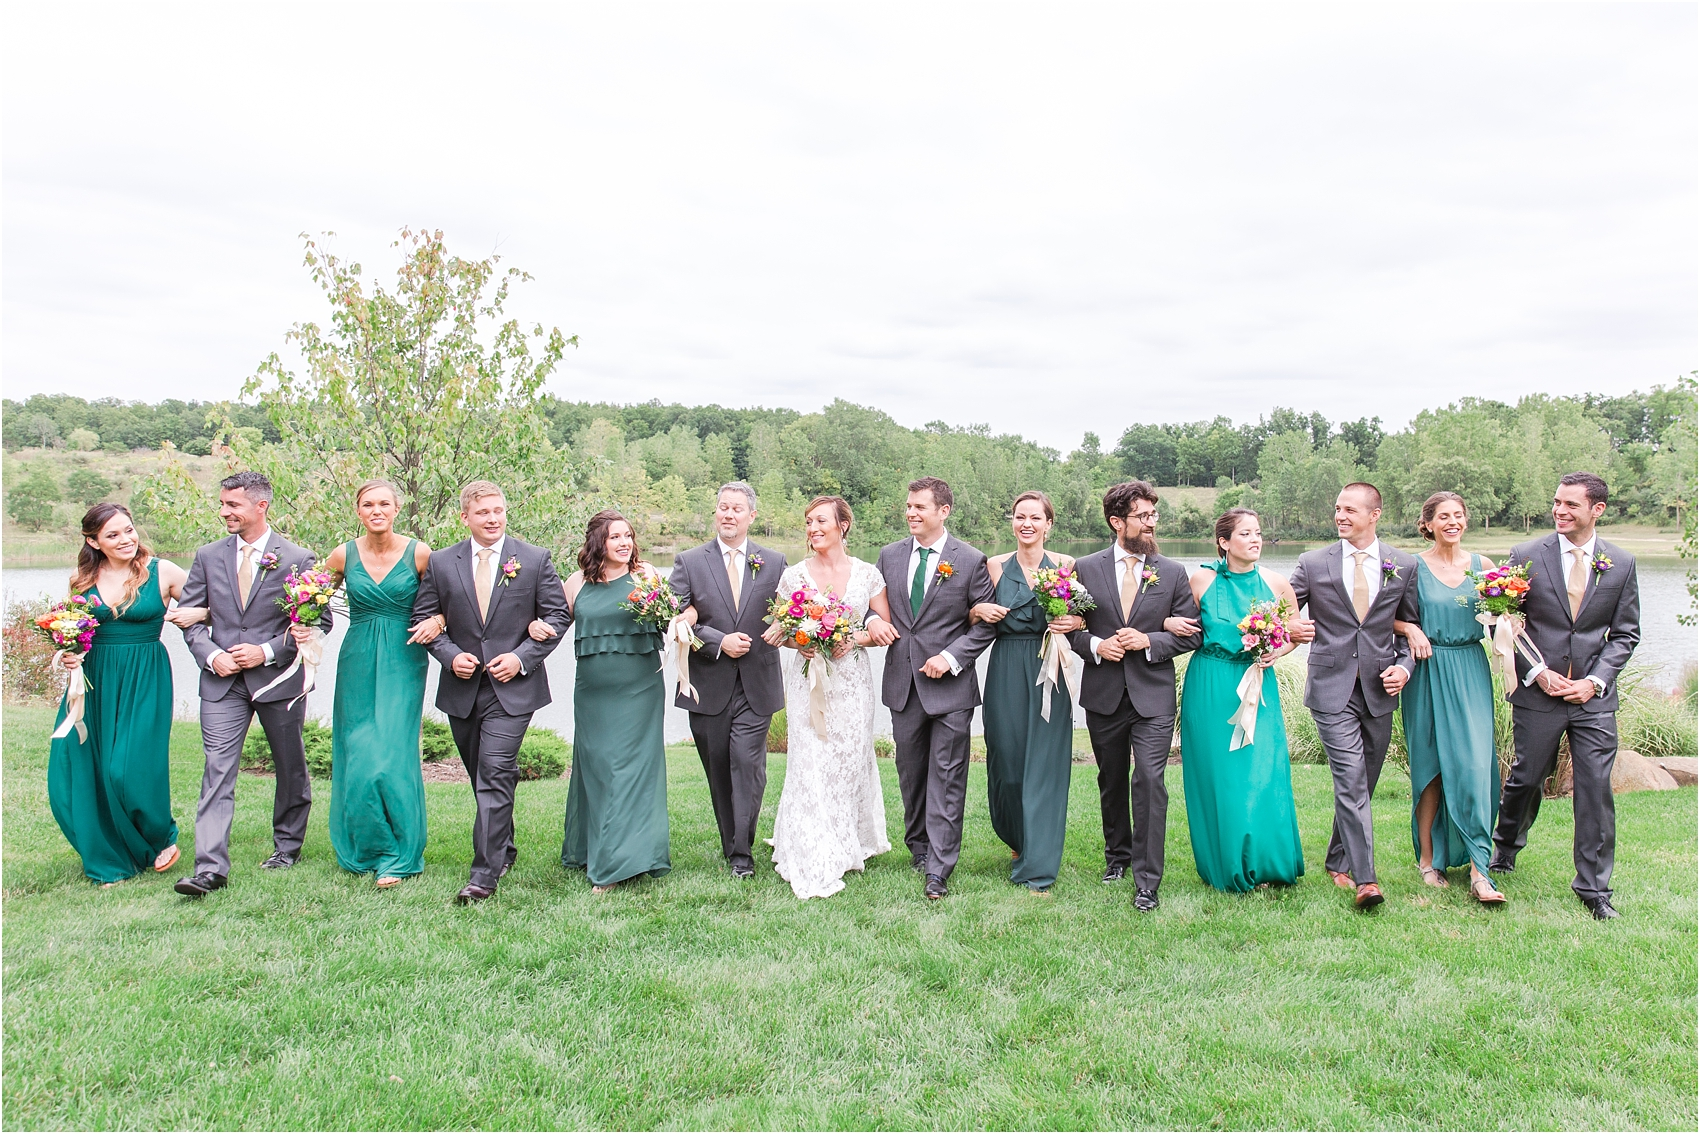 romantic-intimate-backyard-wedding-photos-at-private-estate-in-ann-arbor-mi-by-courtney-carolyn-photography_0061.jpg